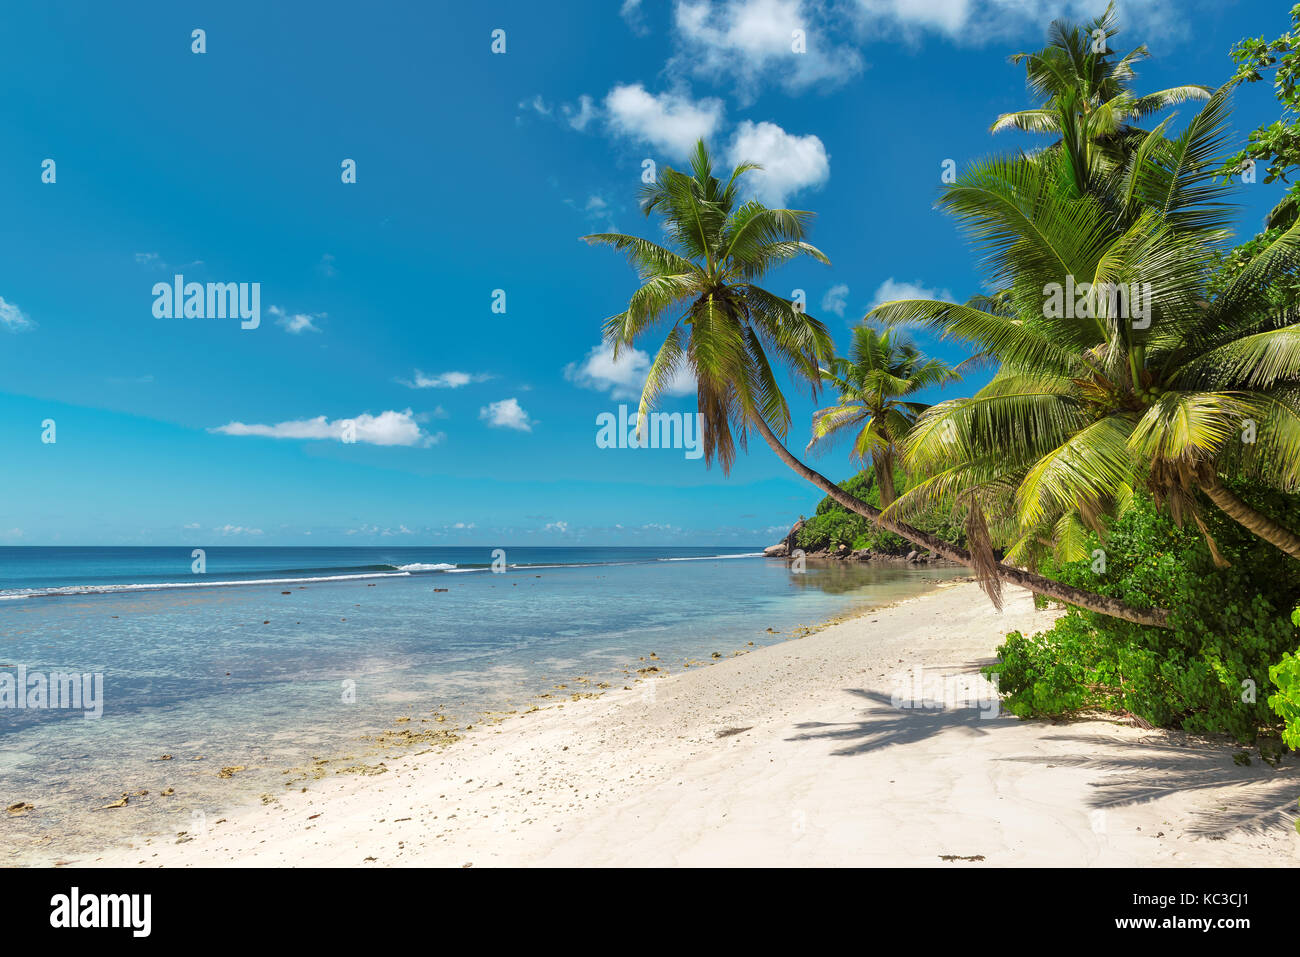 Coconut Palm trees on white sandy beach in Seychelles. - Stock Image